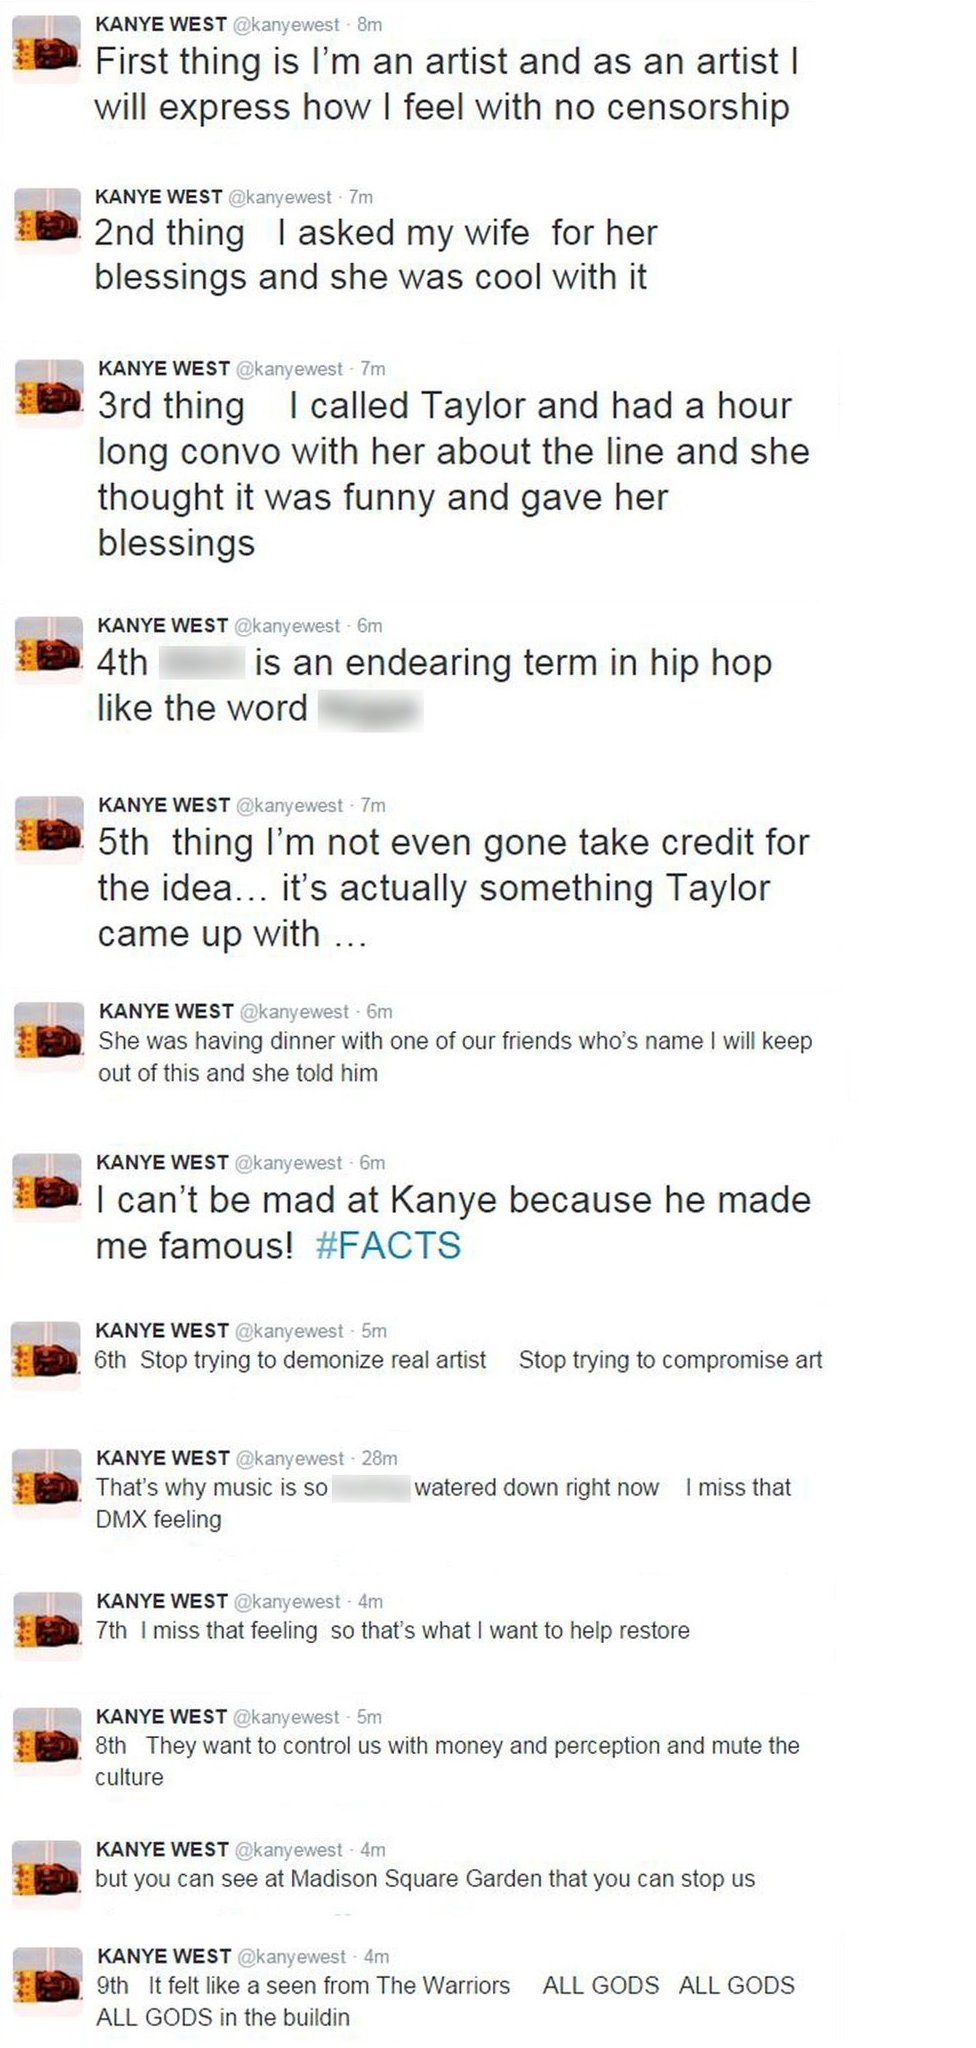 Kanye's Tweets, in chronological order